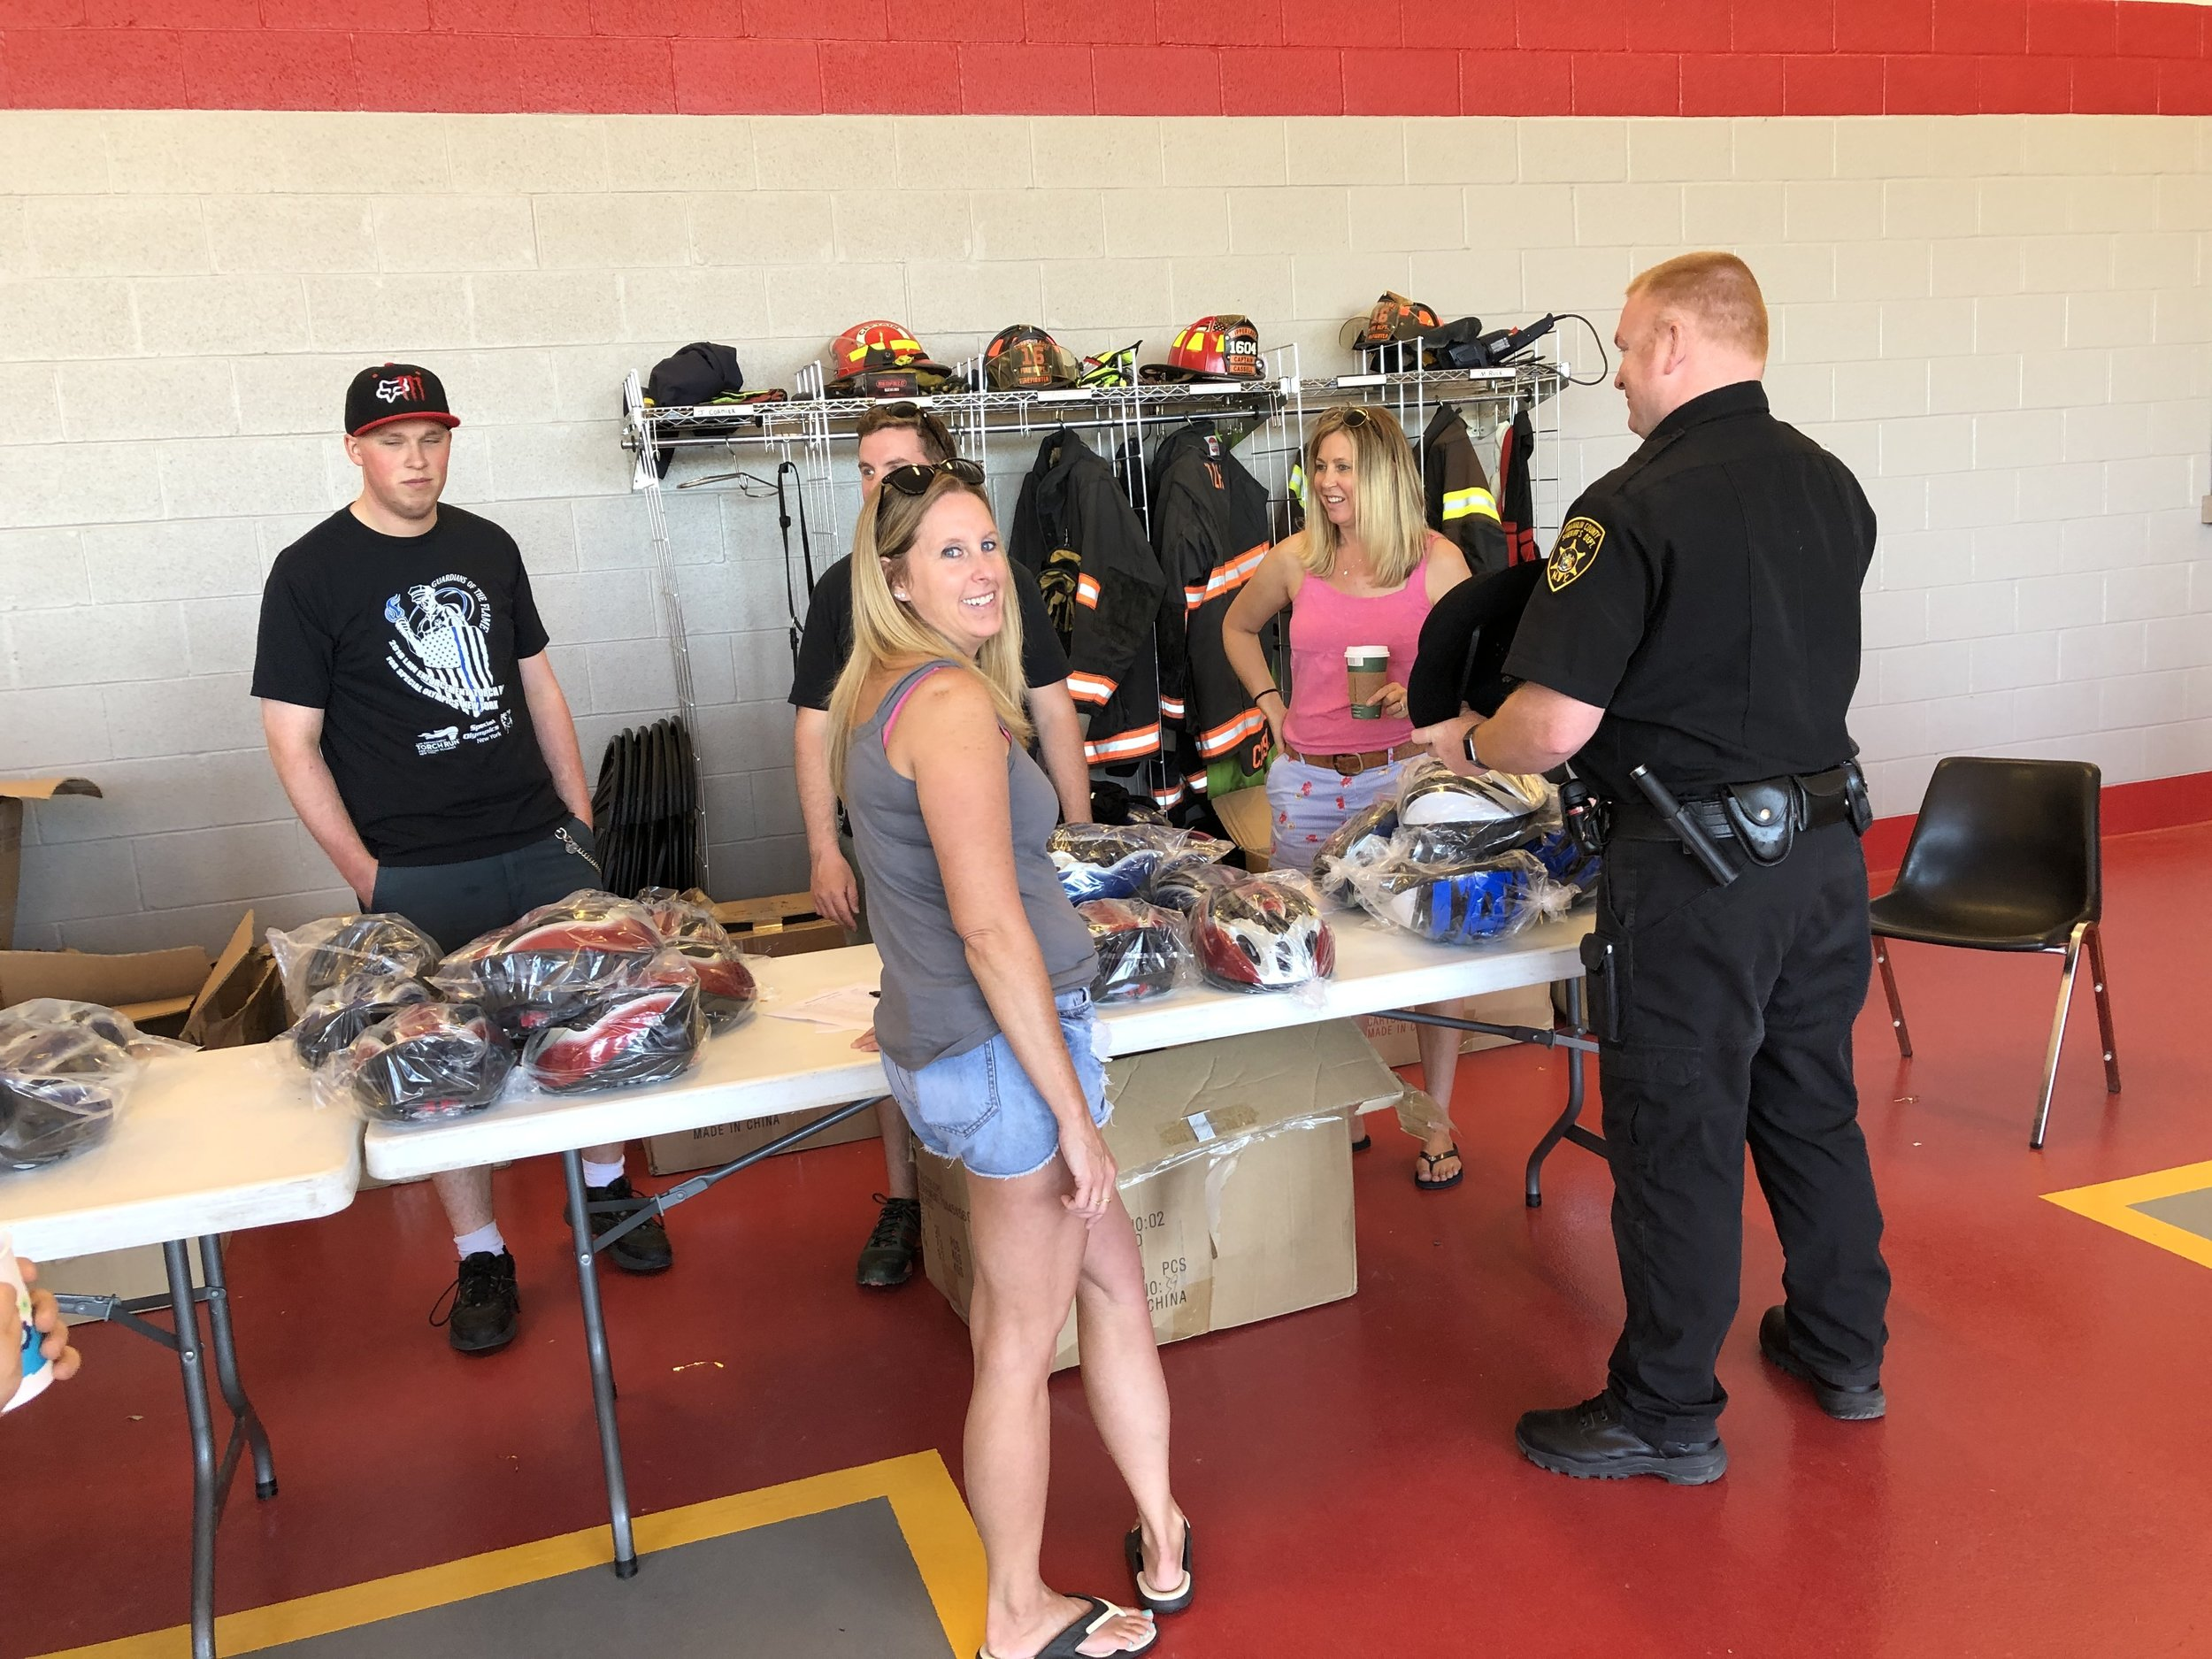 Kiwanis Club members, who each year help Mike Vaillancourt orchestrate his big June event, stayed busy Saturday giving out free helmets to any child who needed one, as part of the police department's commitment to keep kids safe.